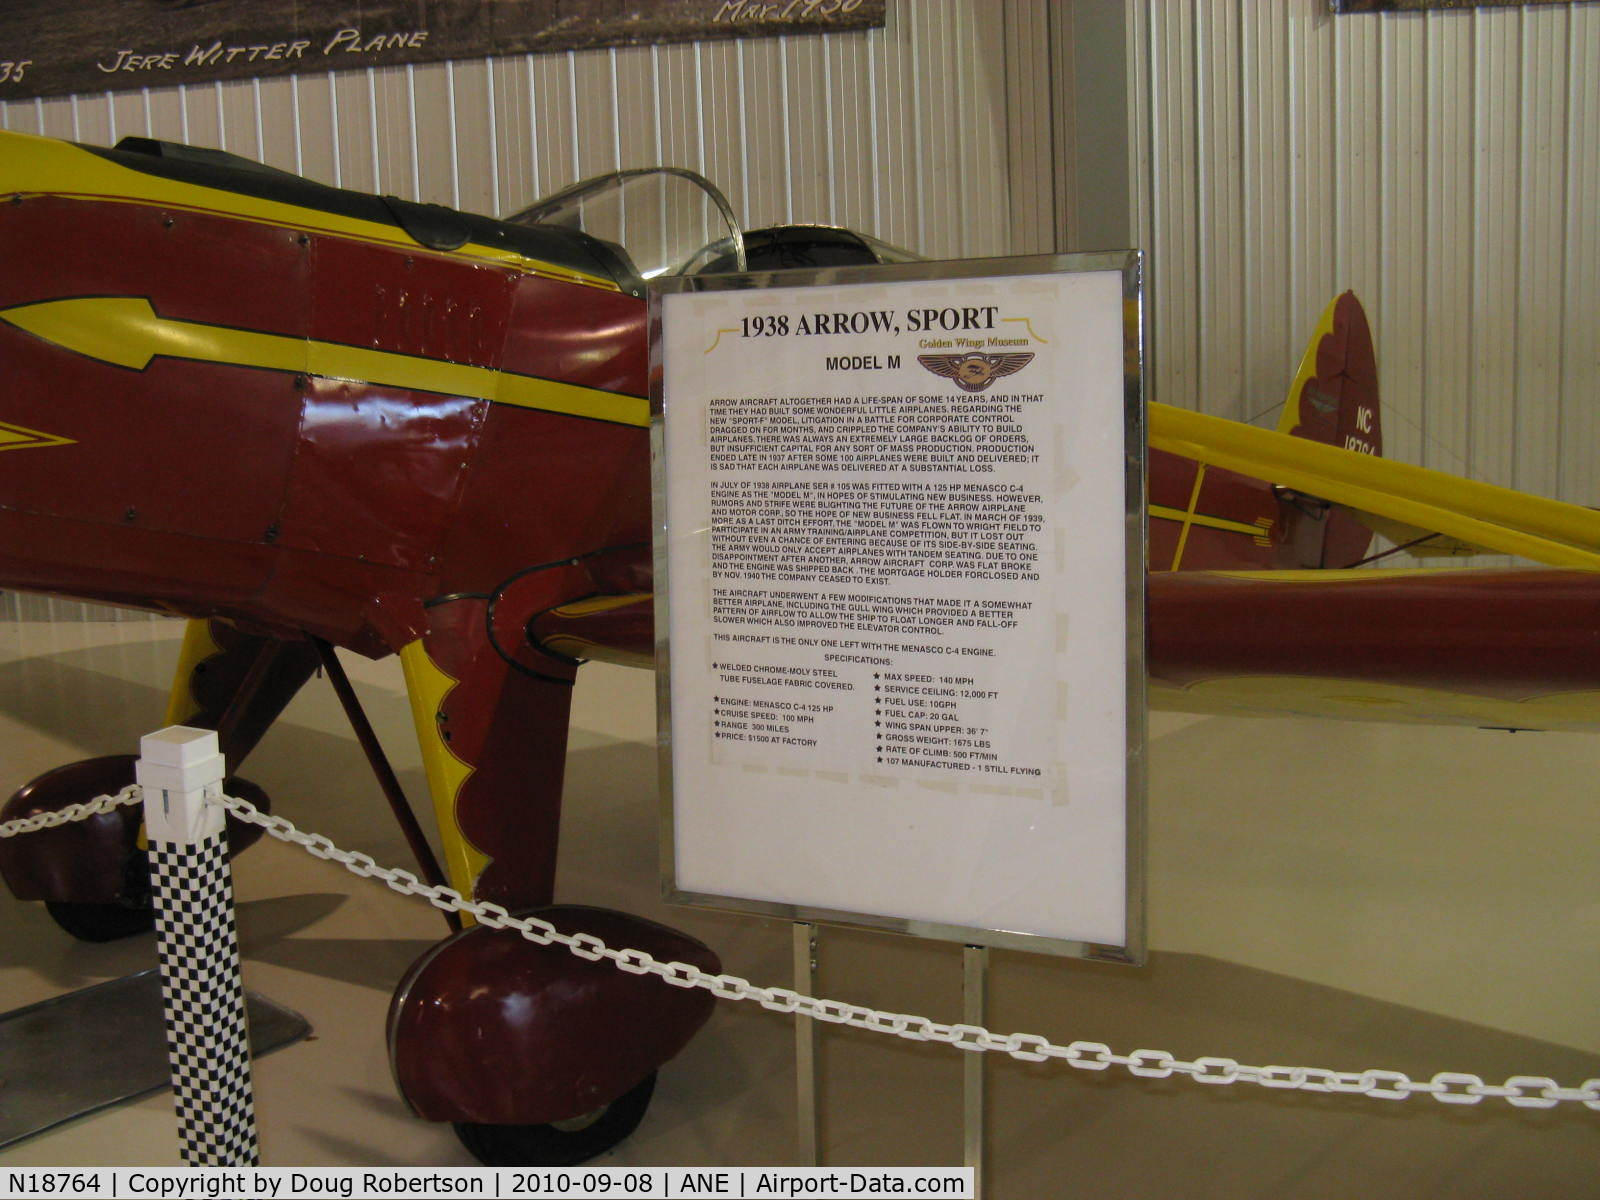 N18764, 1938 Arrow Sport M C/N 105, 1938 Arrow Aircraft and Motor ARROW SPORT M, Menasco PIRATE C4 D4 125 Hp, Experimental class, at Golden Wings Museum